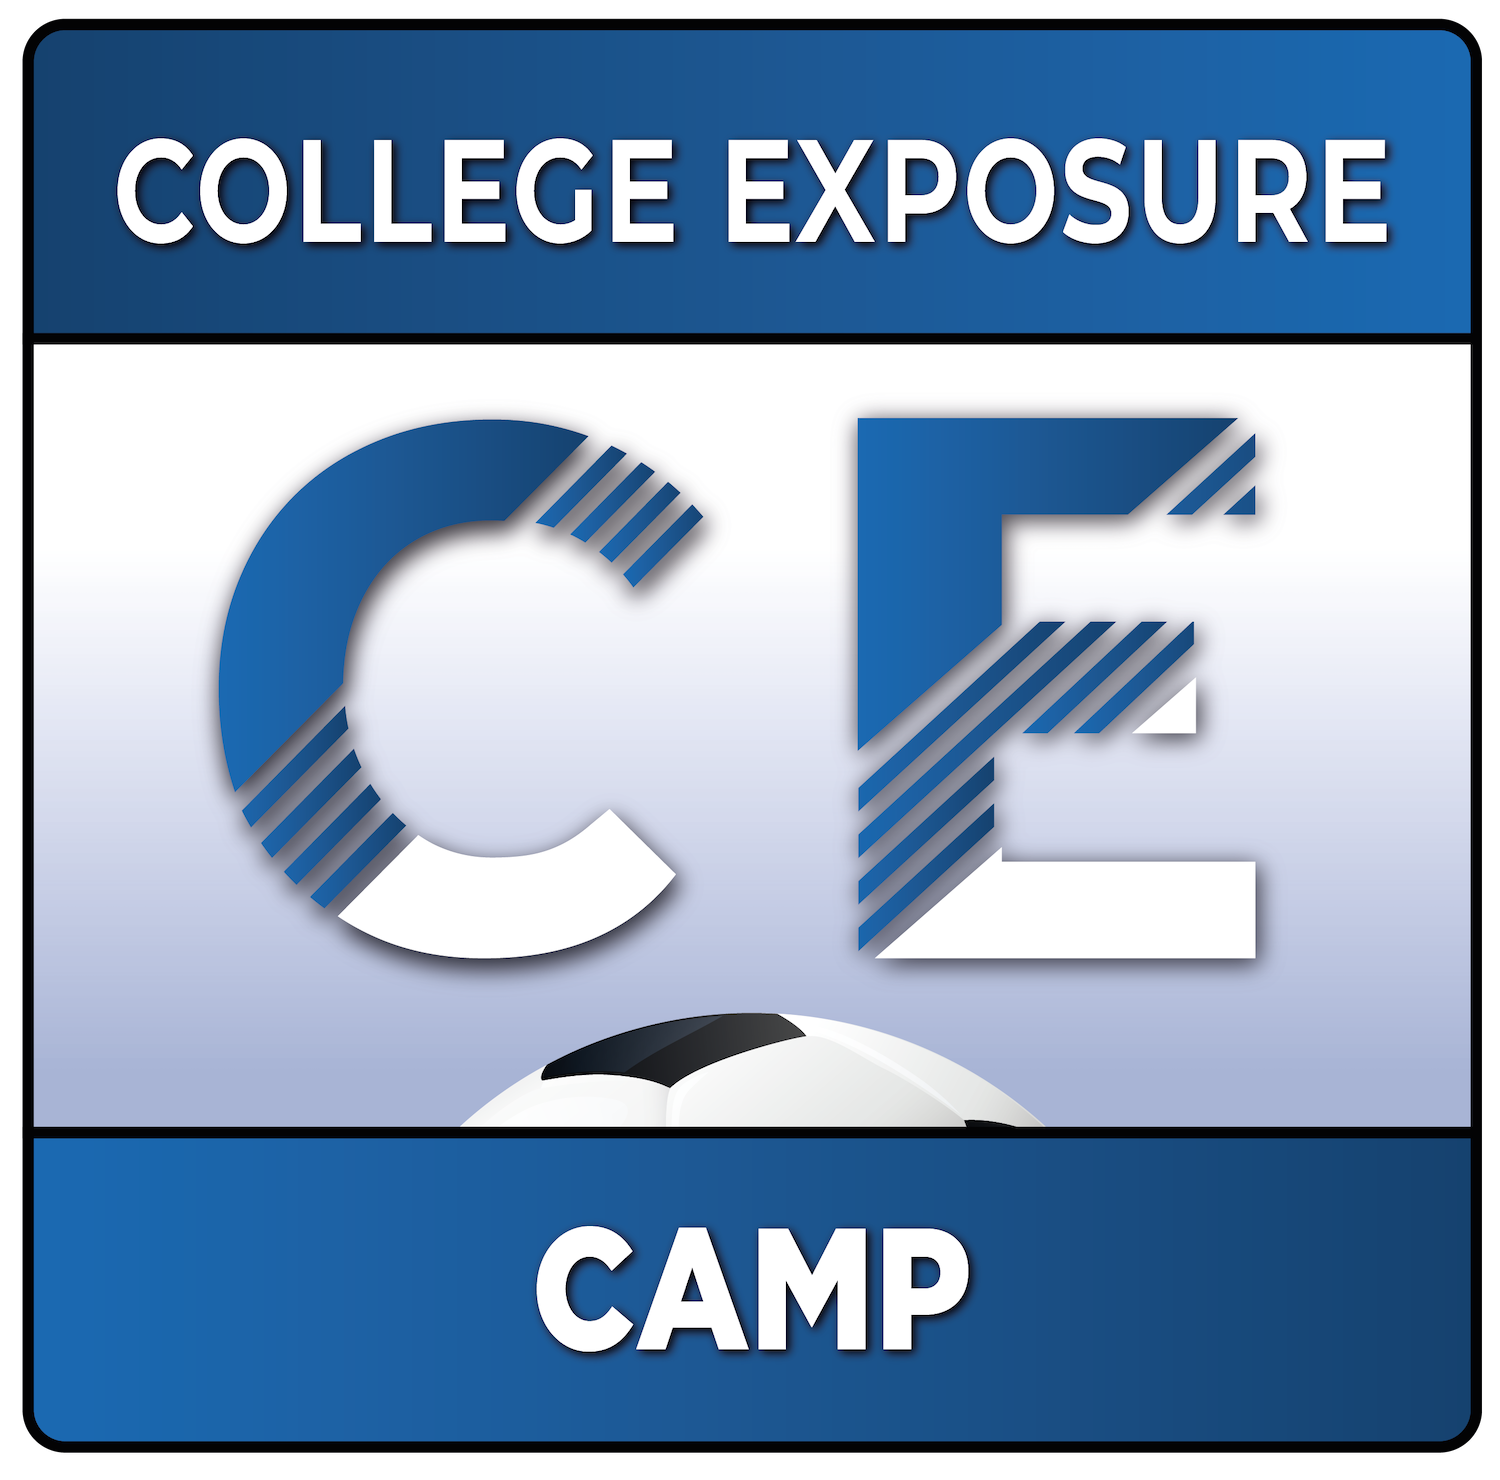 College Exposure Camp